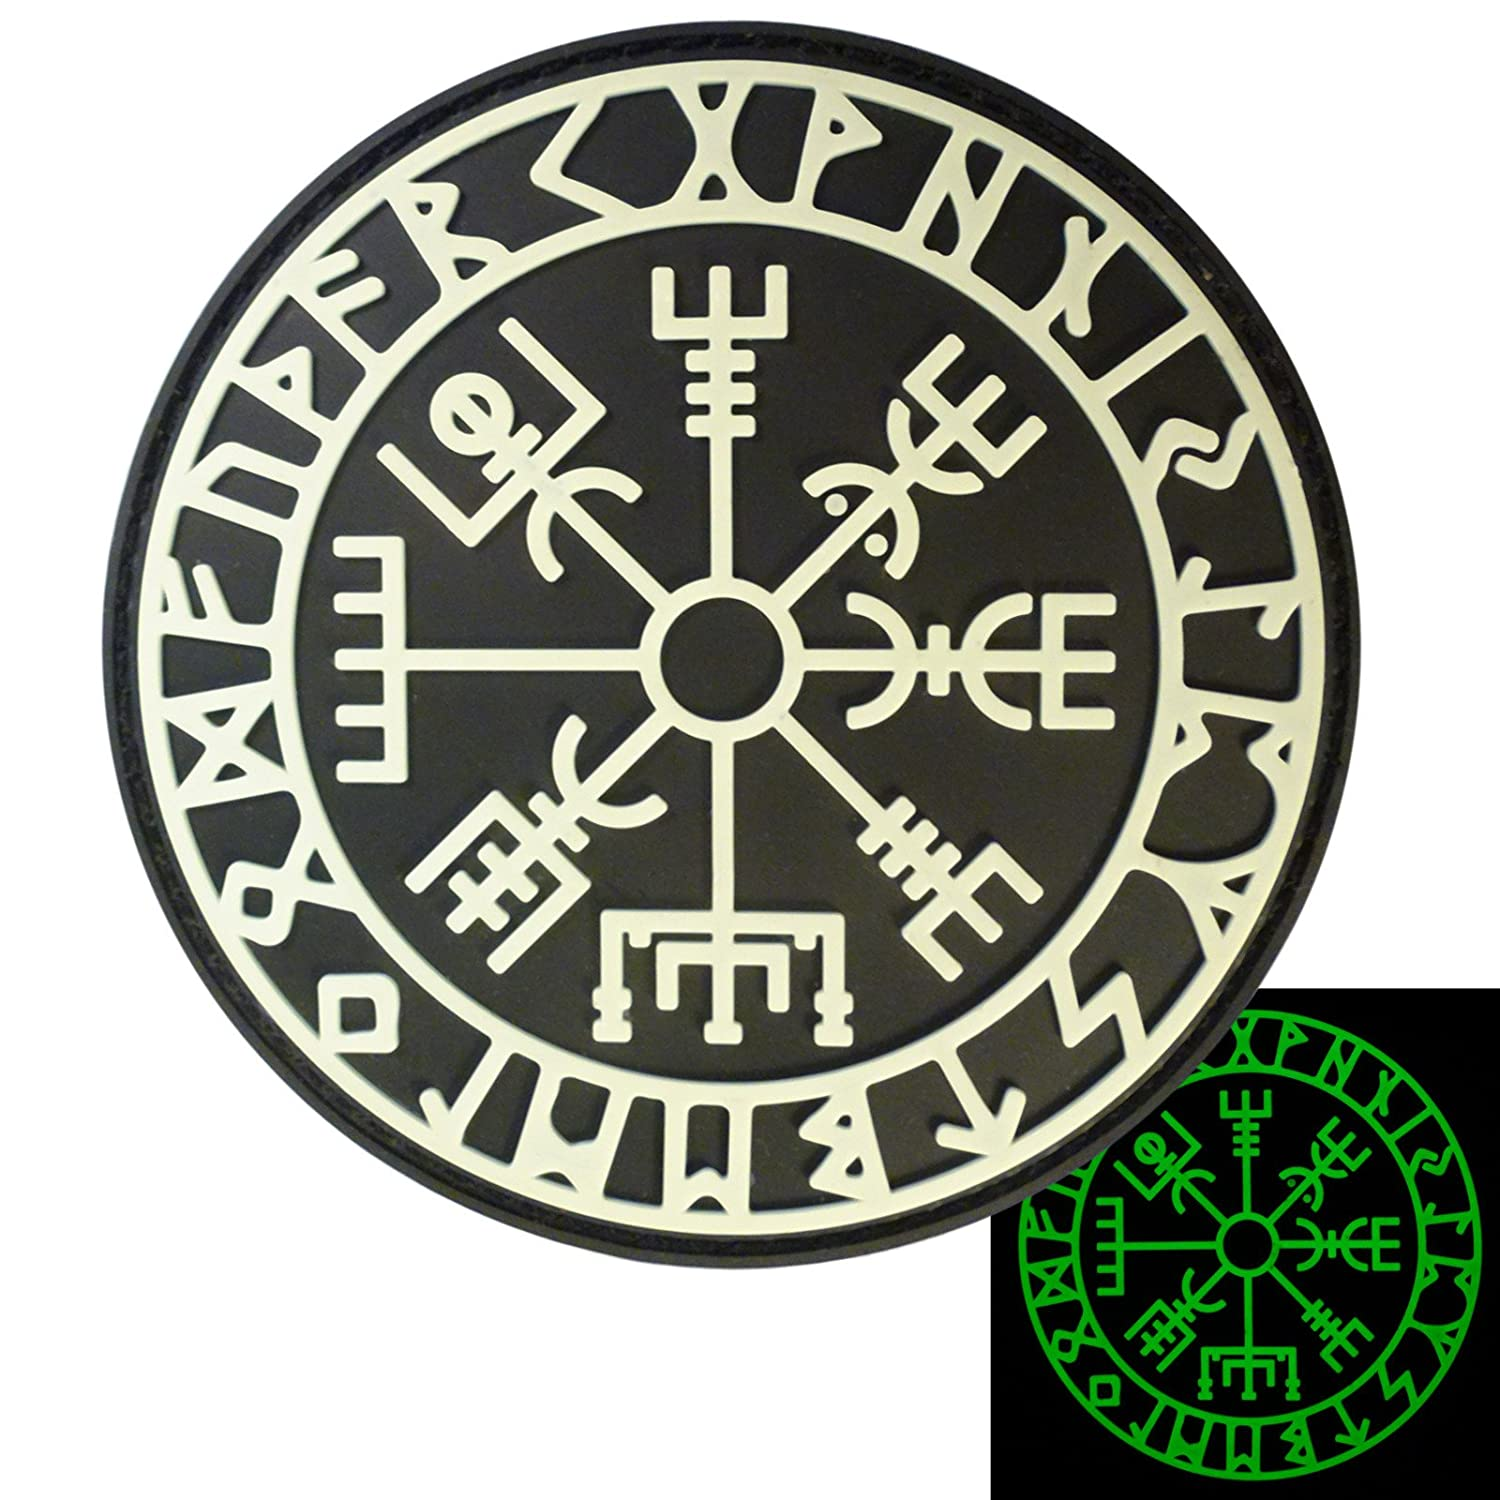 Glow Dark Vegvisir Viking Compass Norse Rune Morale Tactical PVC Rubber 3D Hook-and-Loop Patch P.1776.1.V